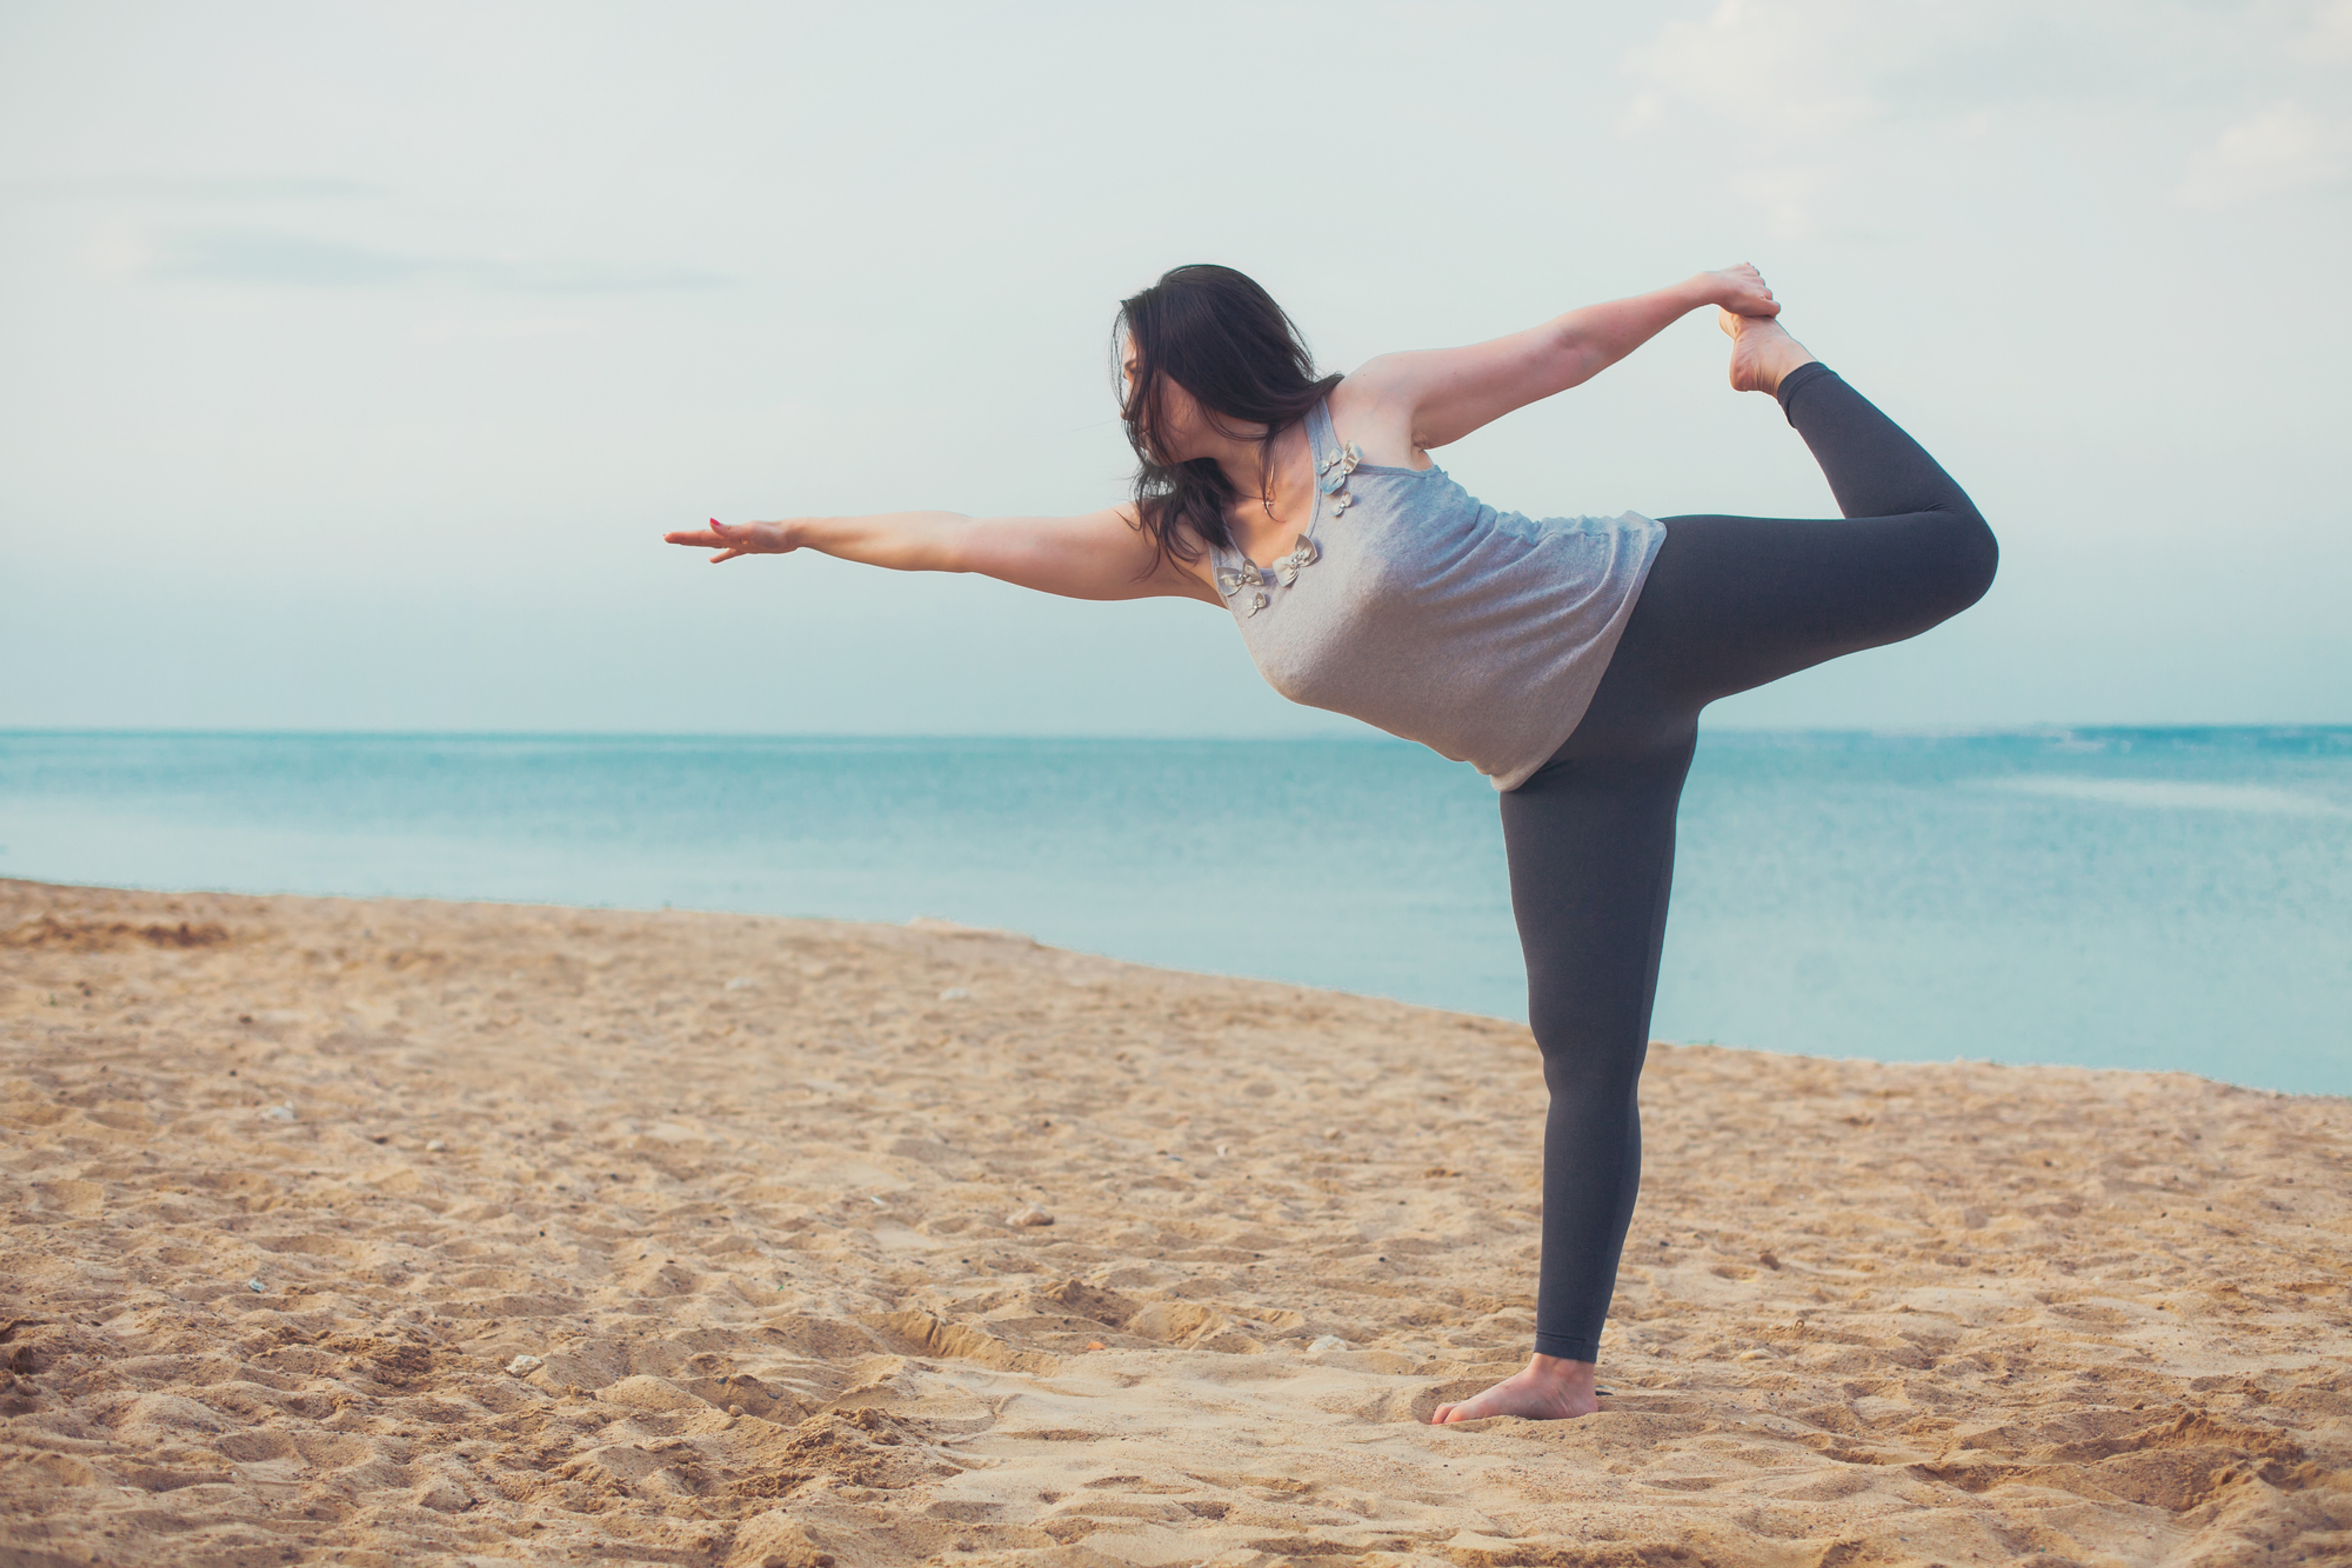 Introduction to Yoga Poses